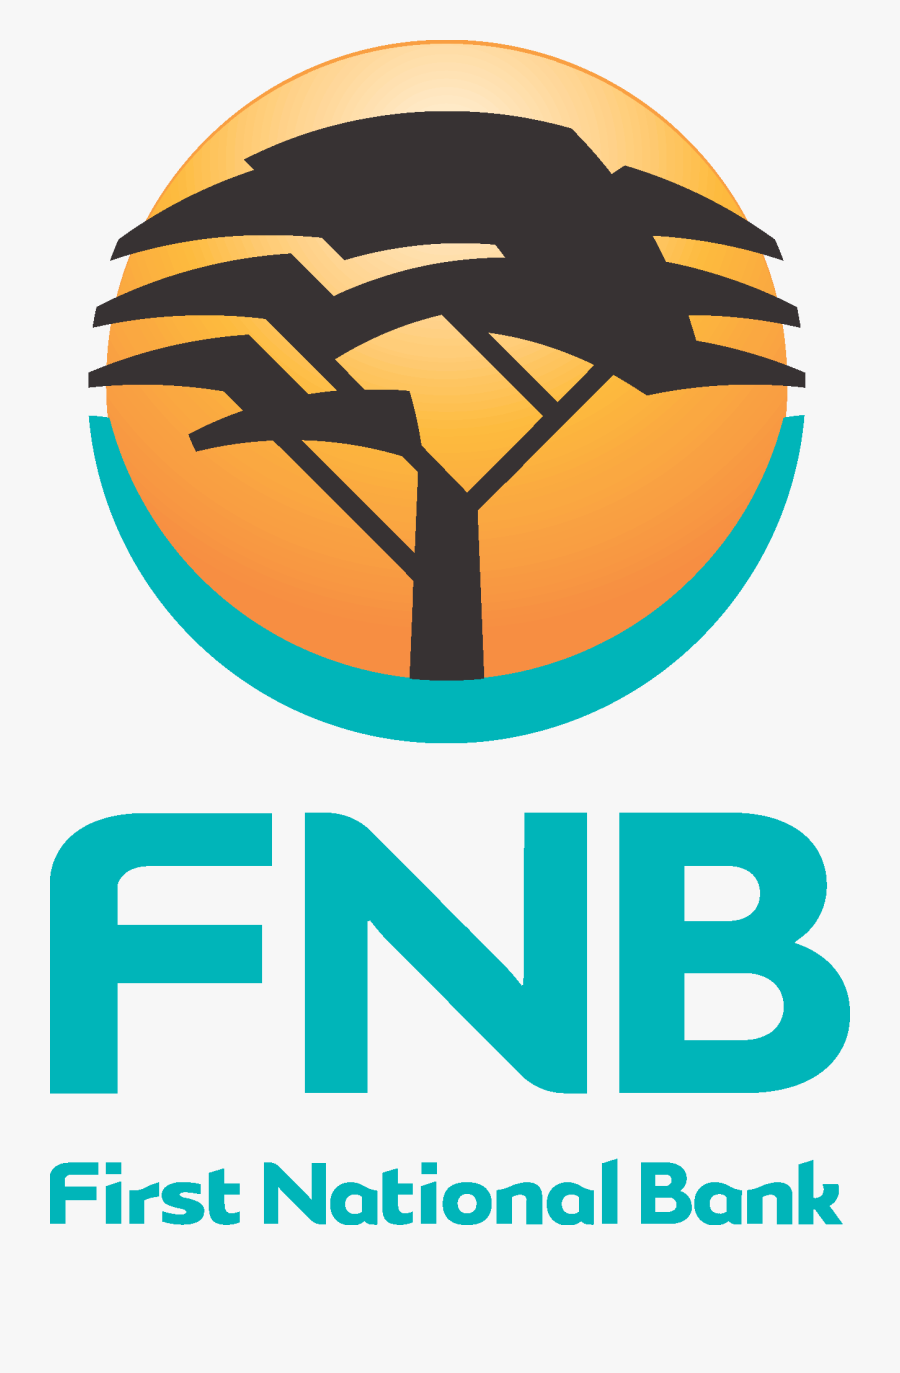 Fnb Bank [first National Bank] Png.